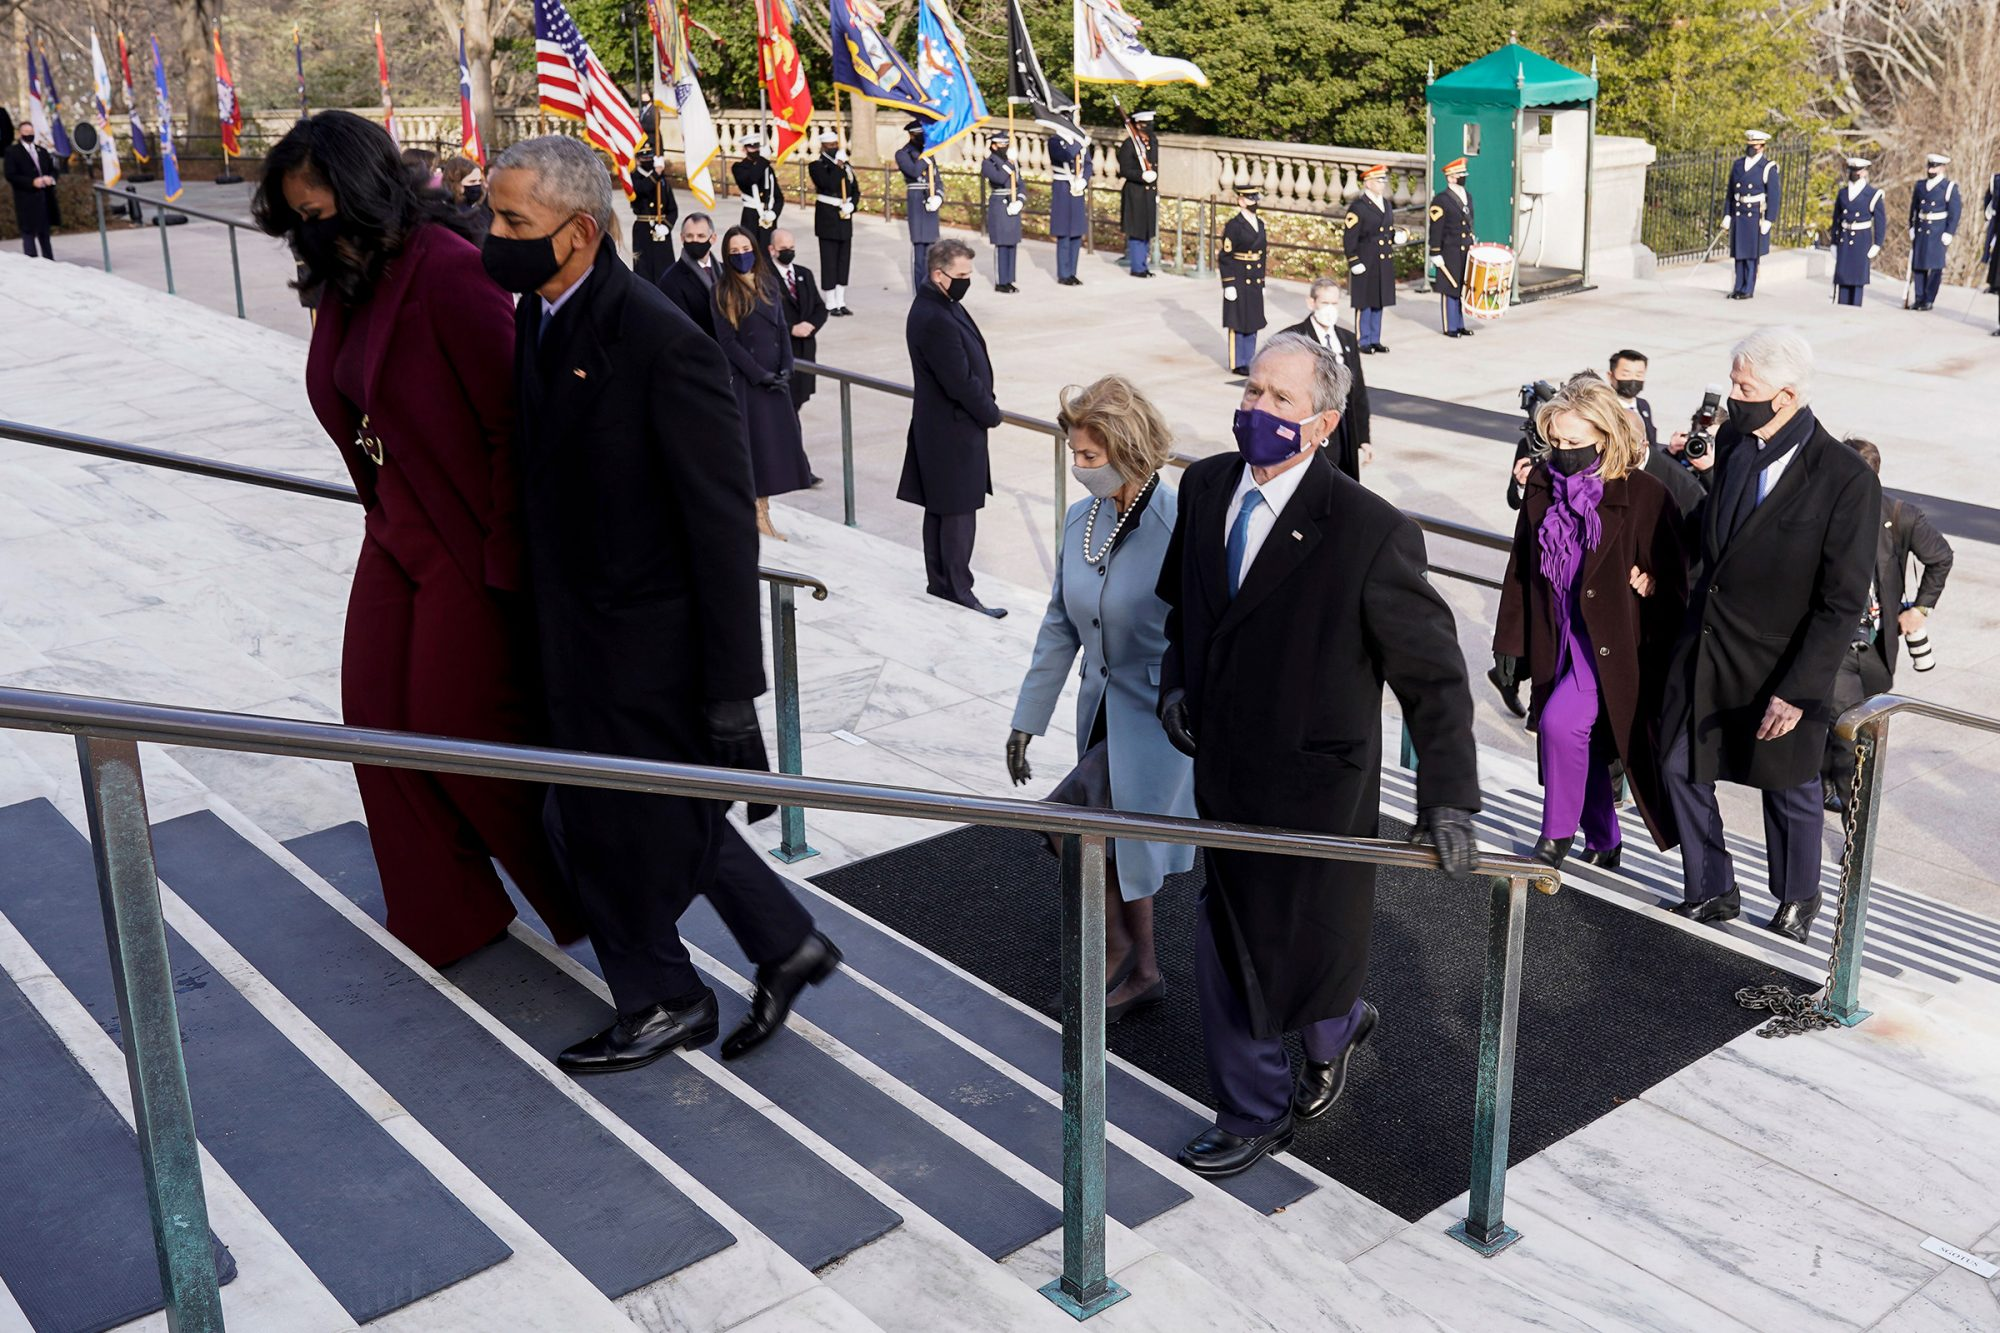 US former President Bill Clinton with wife, former Secretary of State, Hillary Clinton, Former US President George W. Bush with his wife Laura Bush, Former US president Barack Obama and his wife Michelle Obama attend a wreath laying ceremony at the Tomb of the Unknown Soldier at the Arlington National Cemetery, in Arlington, Virginia, USA, 20 January 2021. Joe Biden was sworn in earlier on the same day and became the 46th President of the United States. US President Joe Biden visits Arlington National Cemetery, USA - 07 Jan 2021